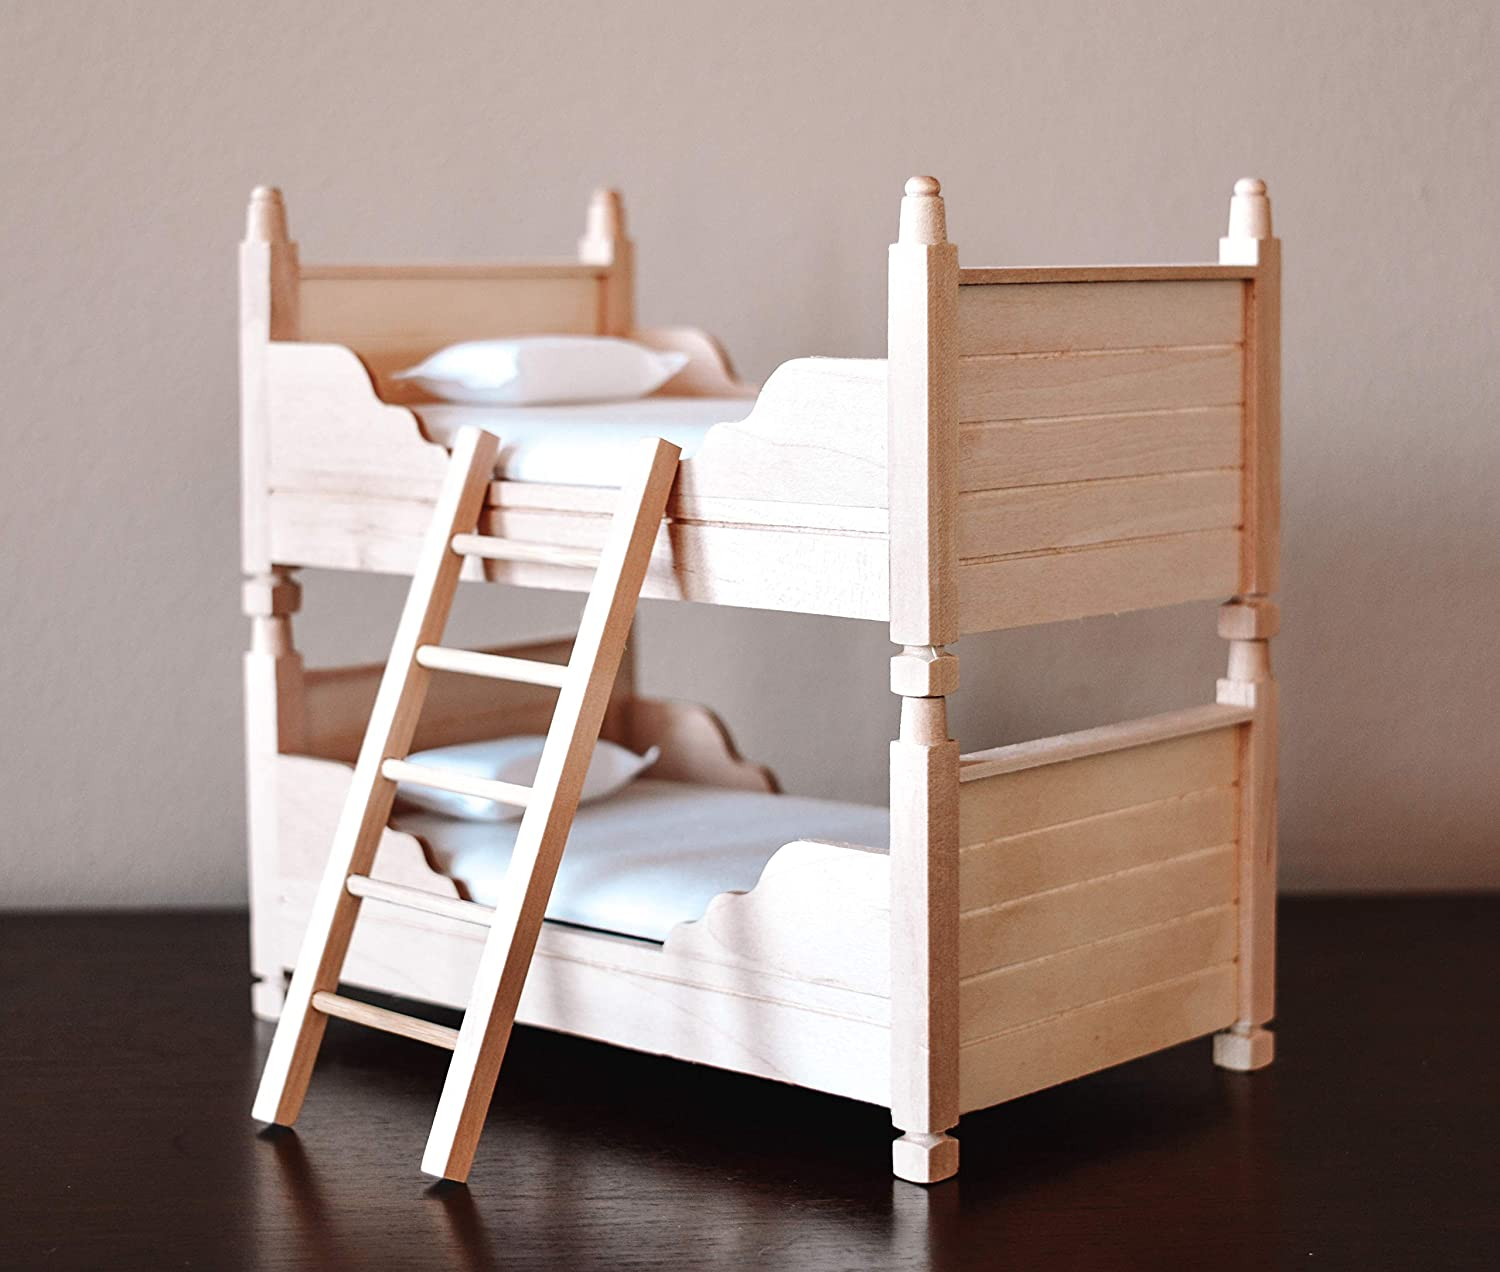 Macy Mae 1:12 Scale Dollhouse Bunk Beds. Must Have Miniature Doll House Accessory.